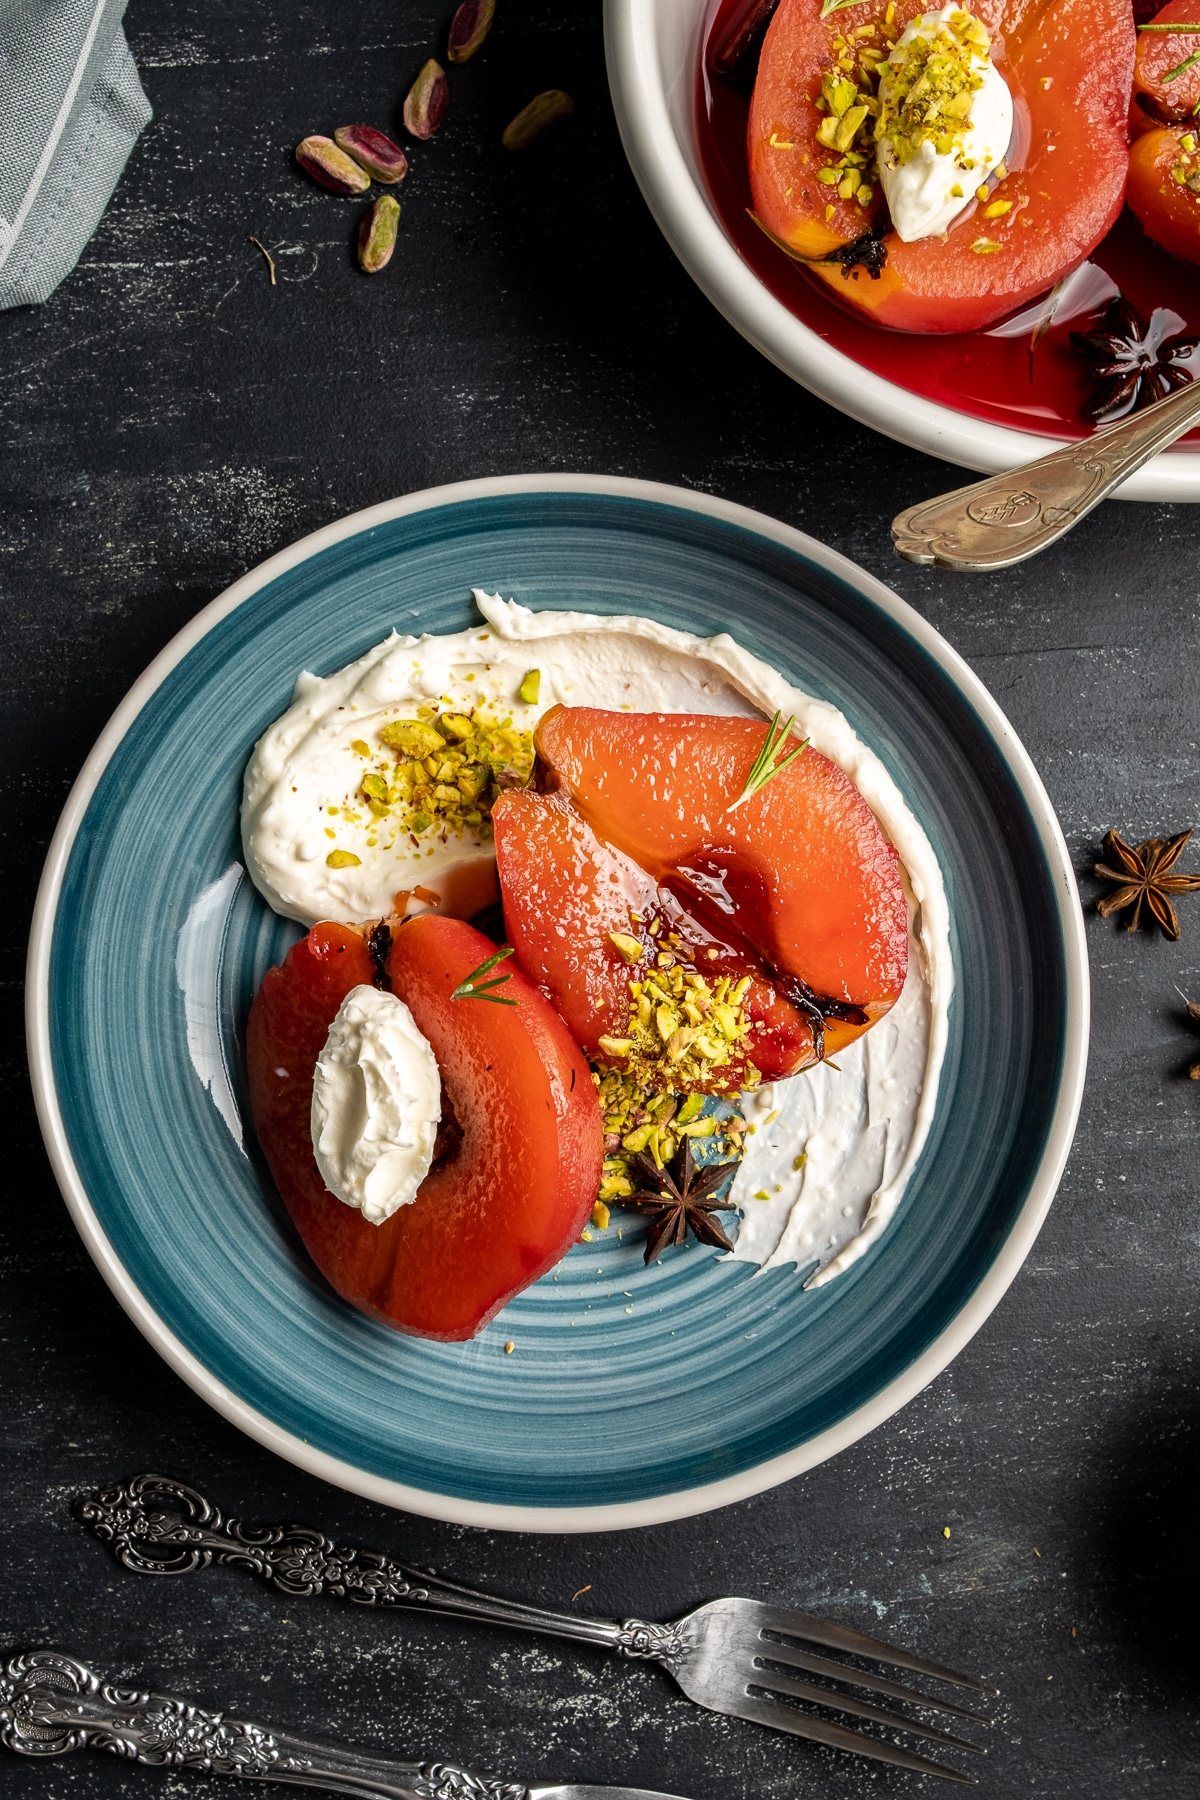 Turkish style quince dessert served with pistachio and clotted cream on a plate.